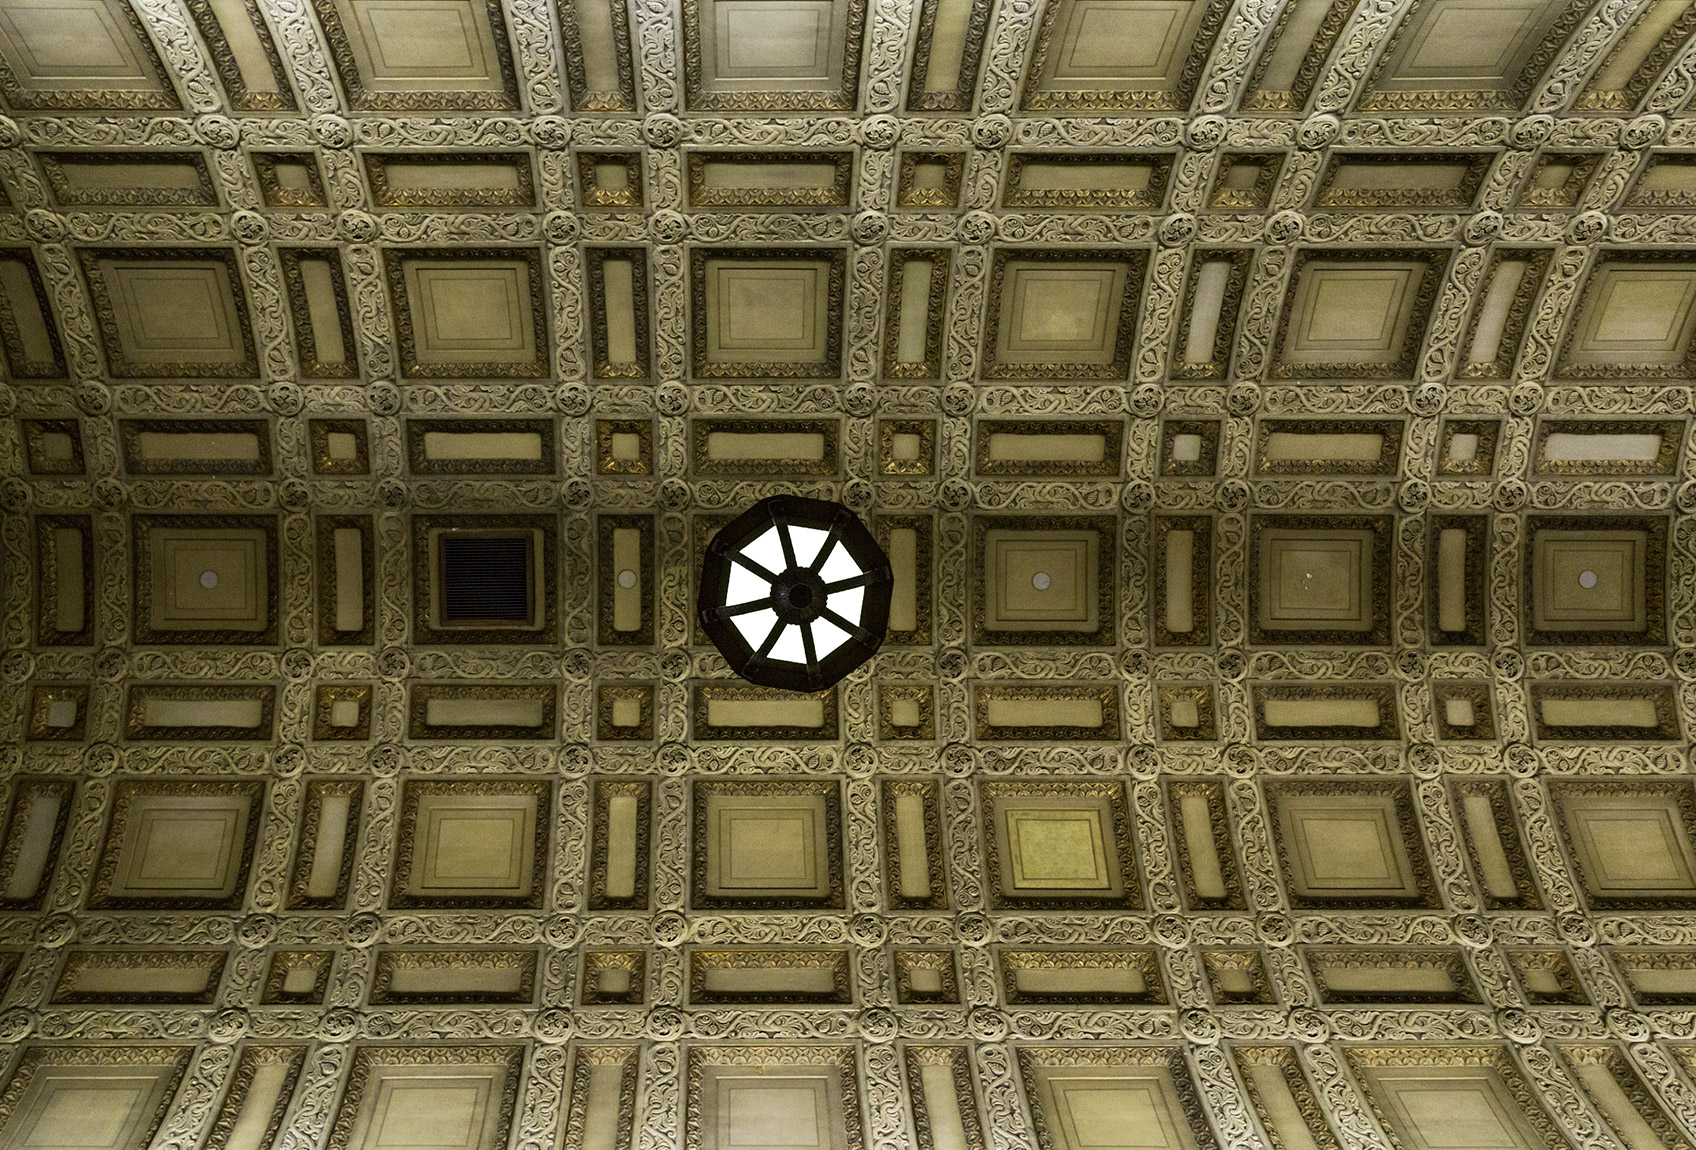 20160529. Commerce Court North corridor ceiling. Doors Open Toro